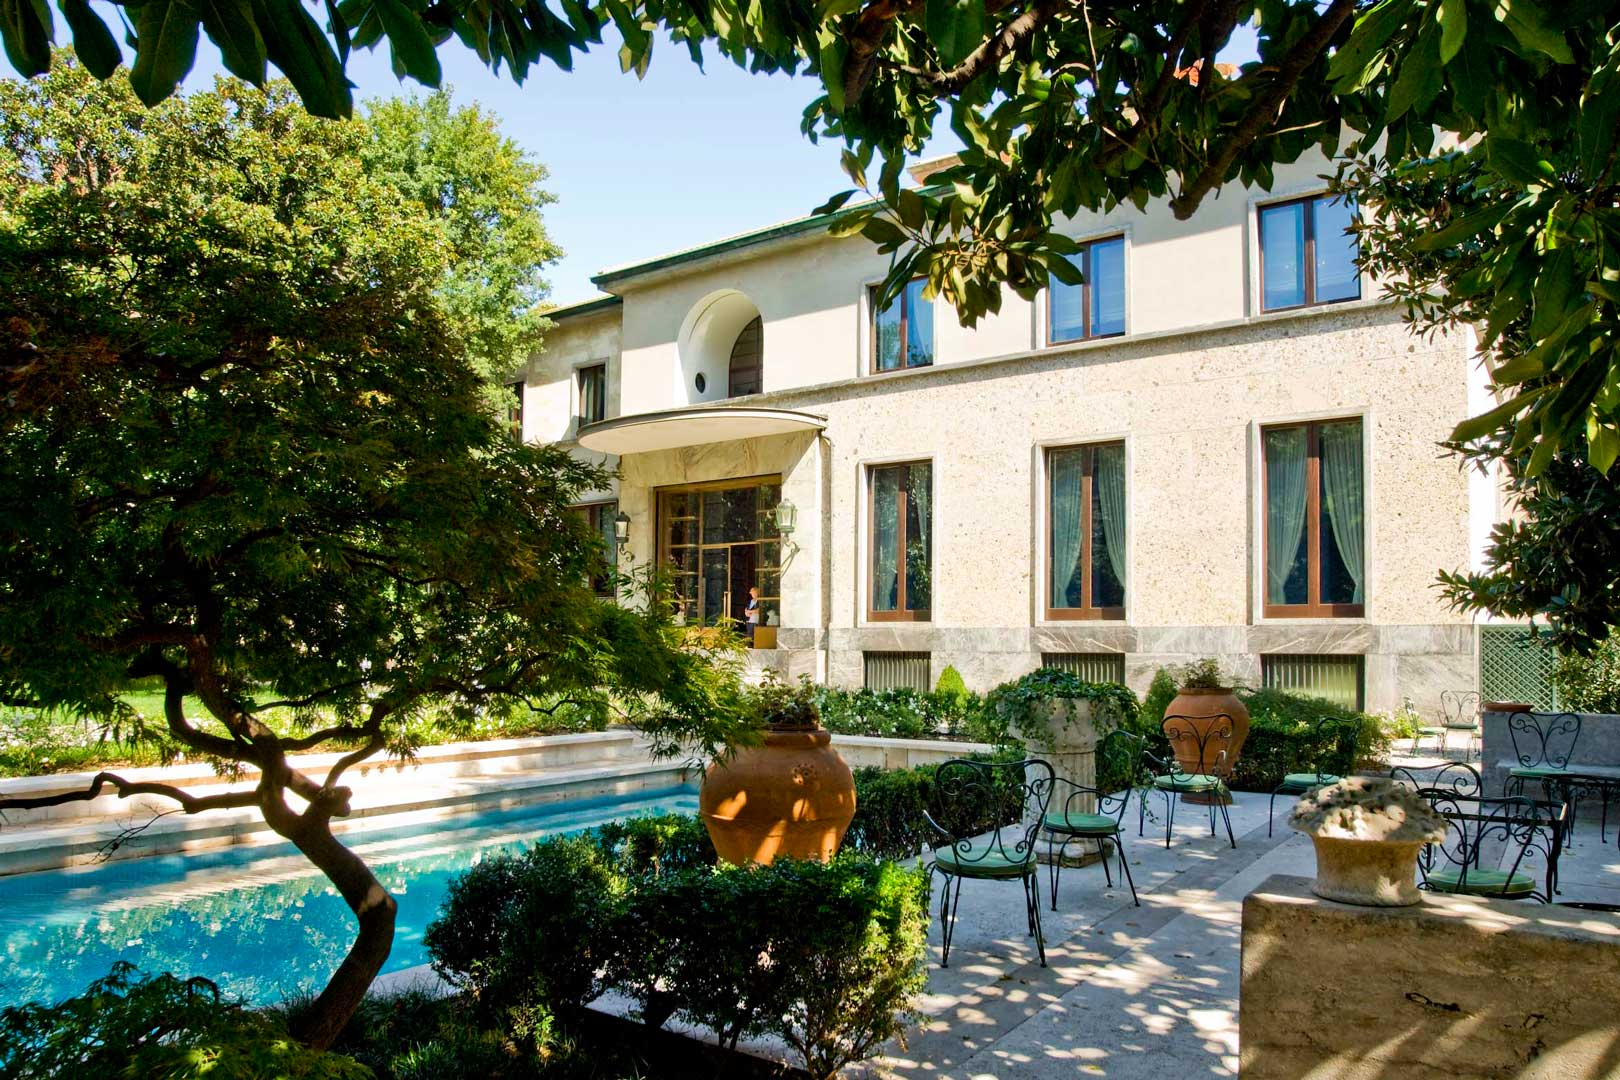 Villa necchi campiglio flawless milano the lifestyle guide for Villa fenicotteri milano